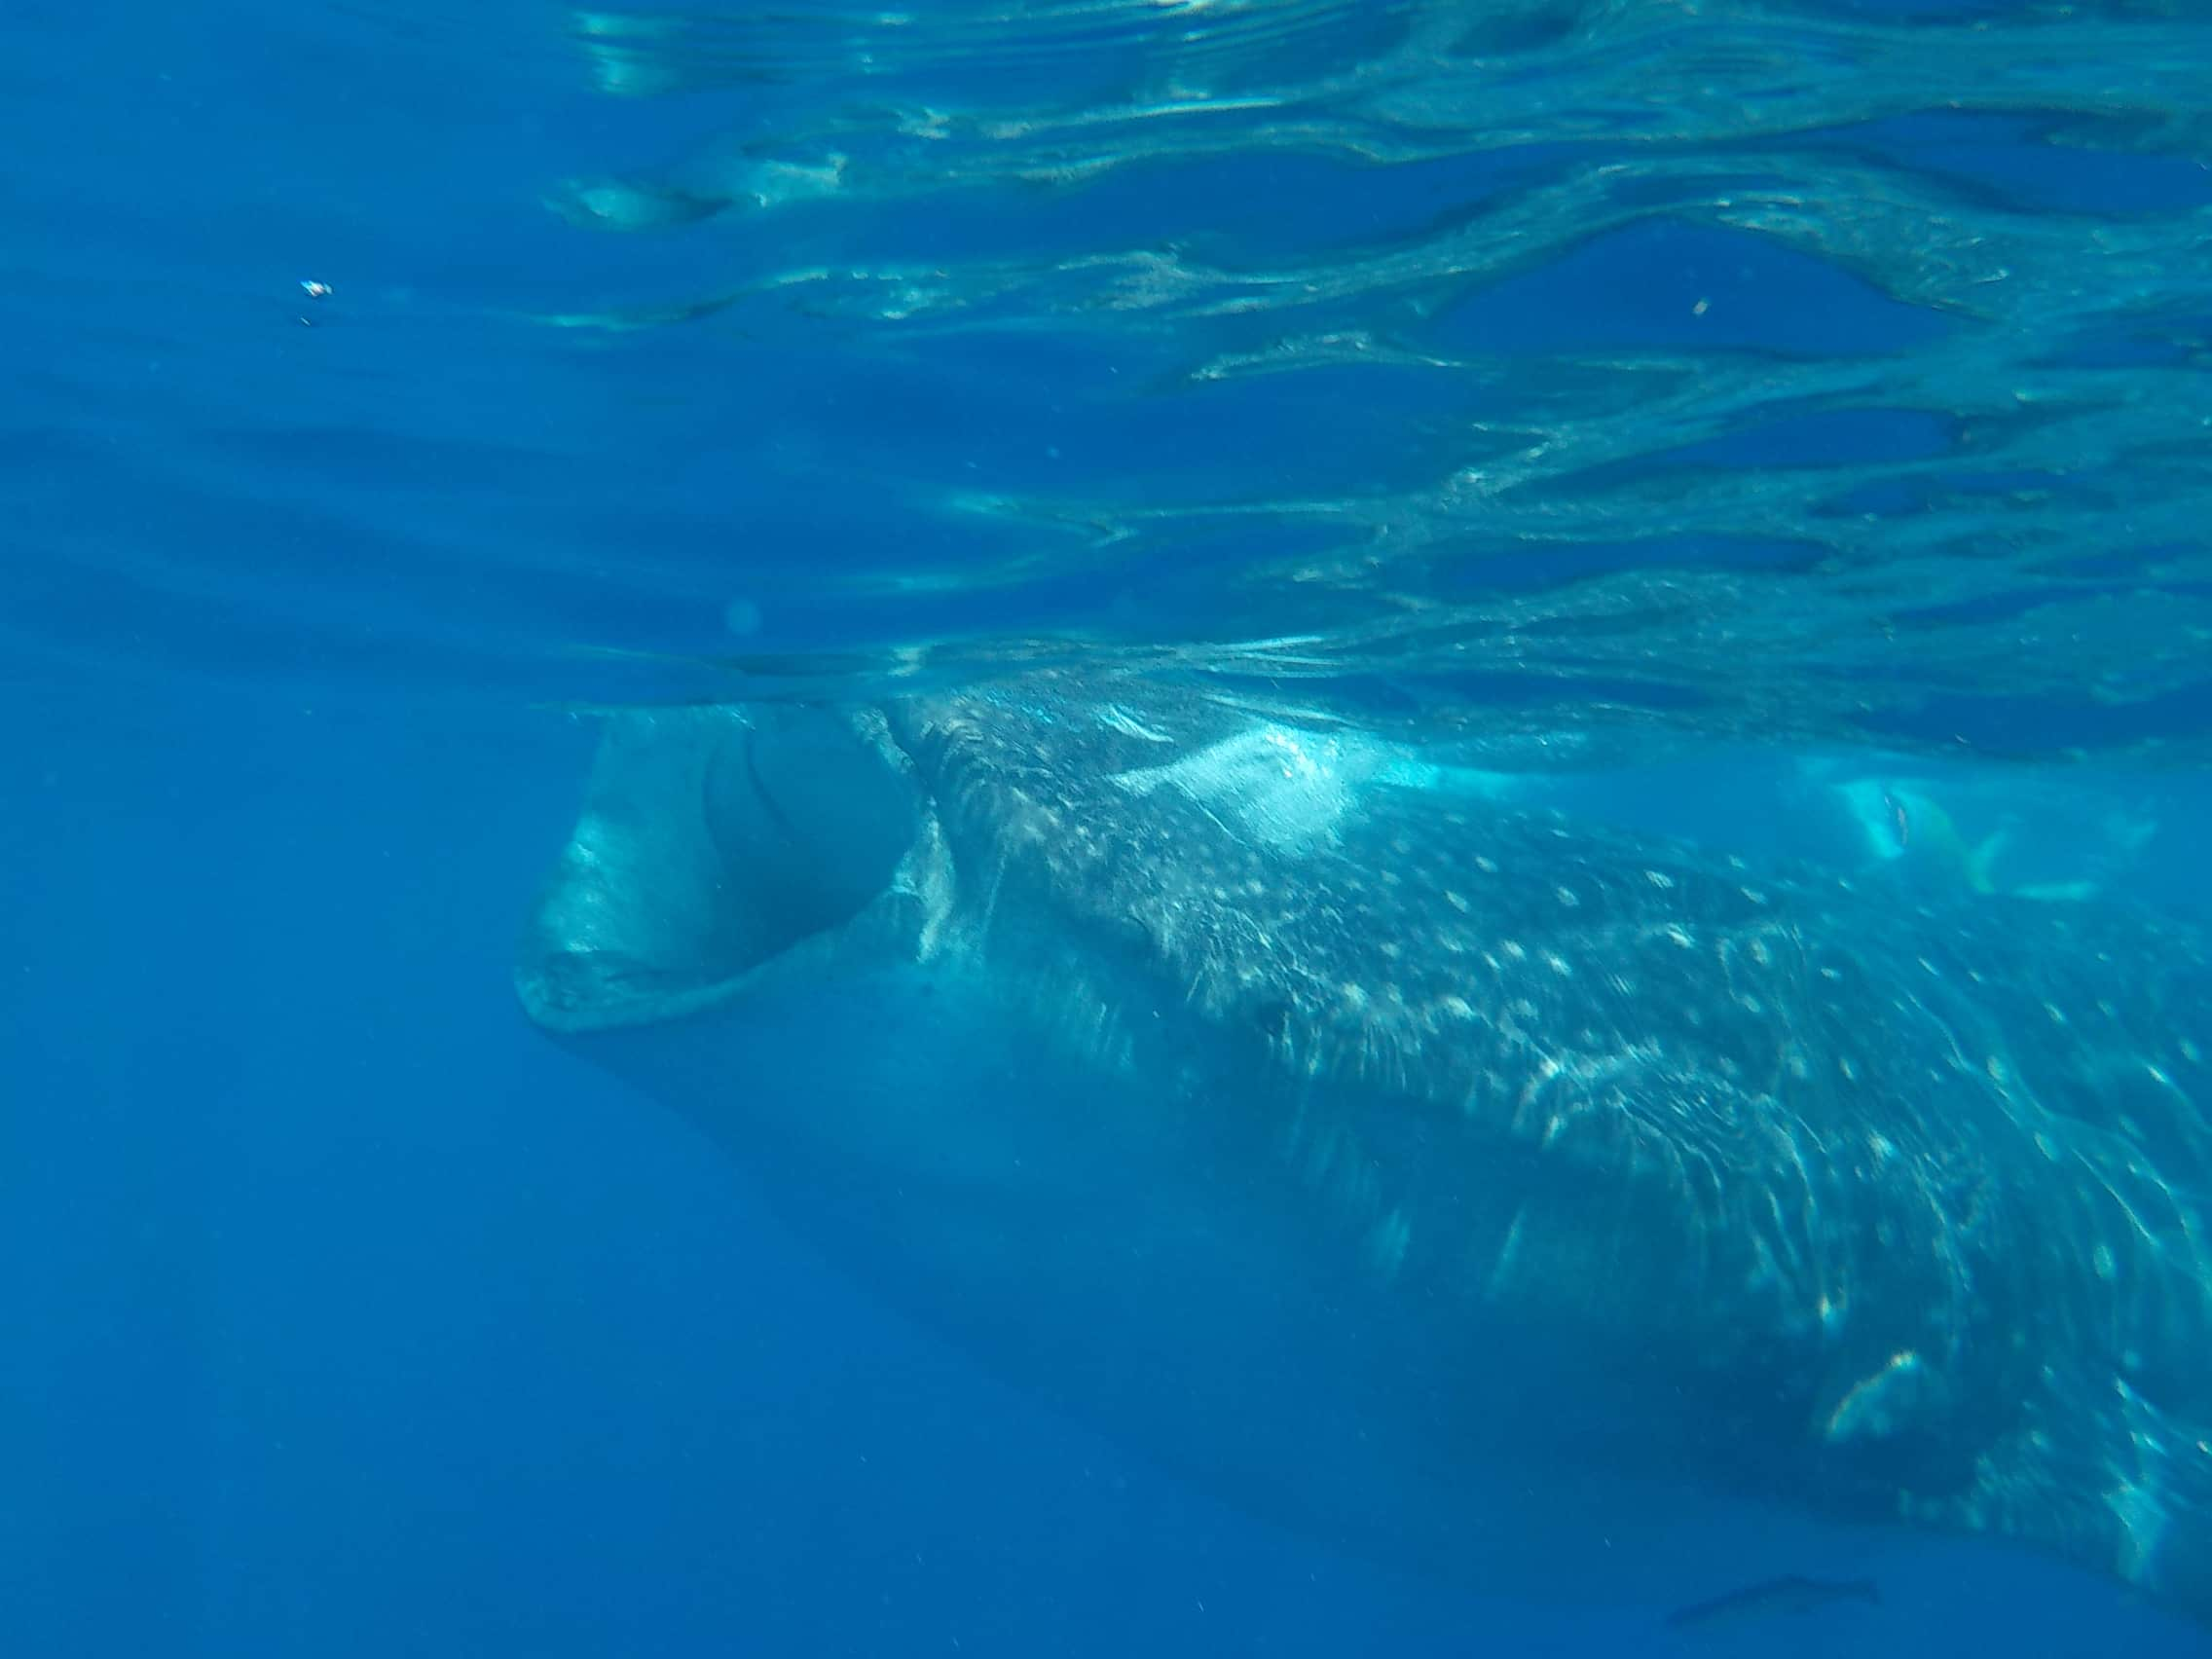 Thinking of swimming with whale sharks in Playa del Carmen, Cancun, or Tulum? Then read this first. This is everything you need to know before booking this once in a lifetime whale shark swimming experience. #whaleSharks #swimwithsharks #swimwithwhalesharks #mexicotravelguides